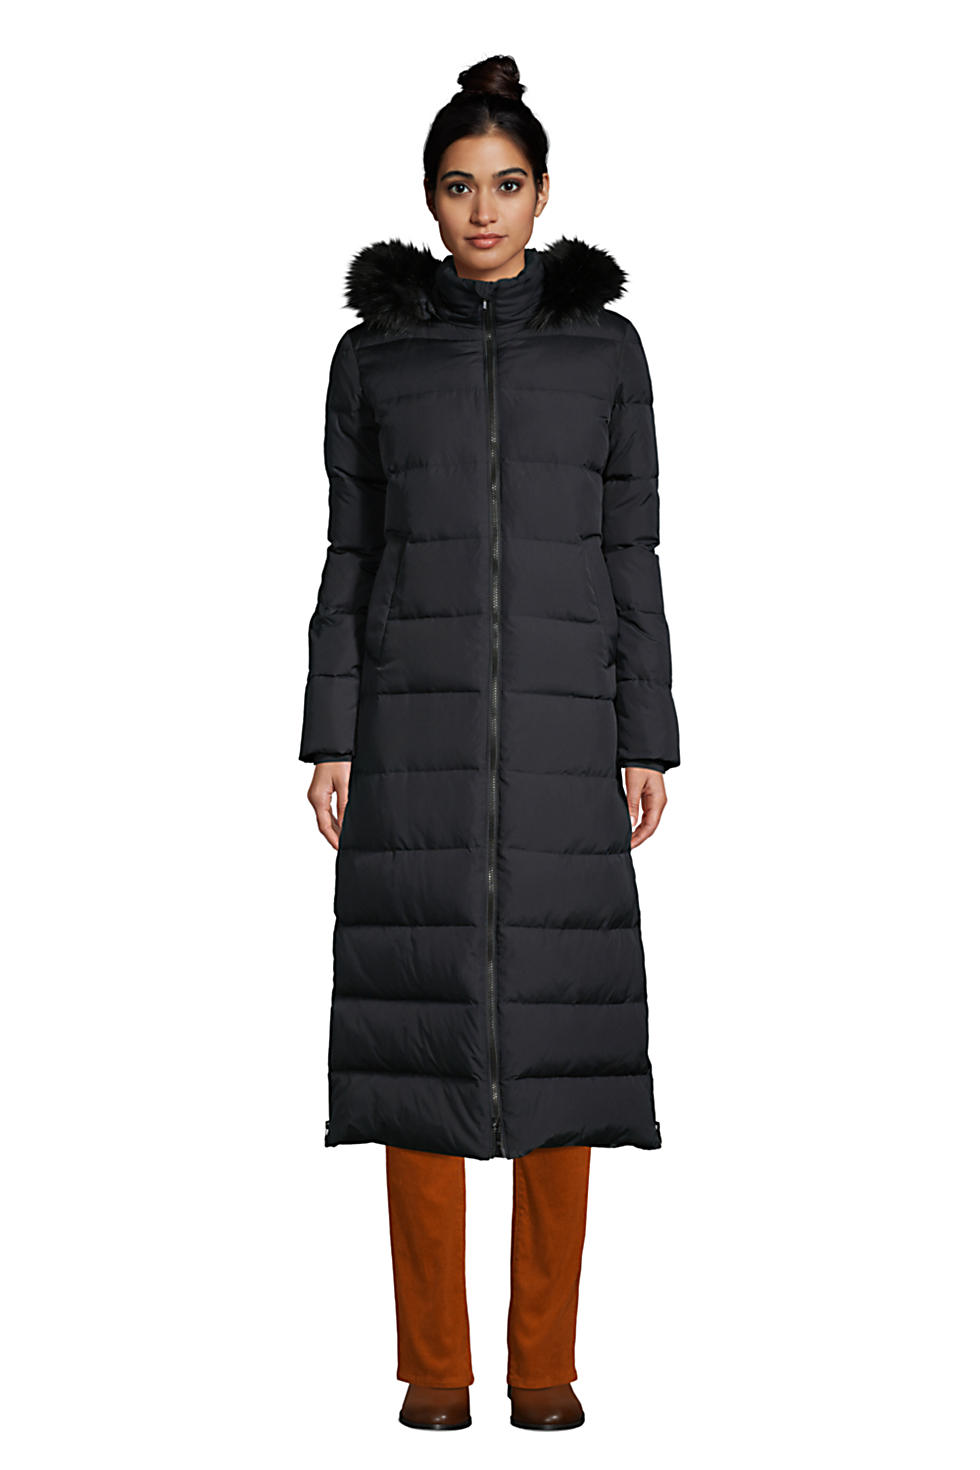 Lands End Womens Winter Maxi Long Down Coat with Hood (various colors/sizes)